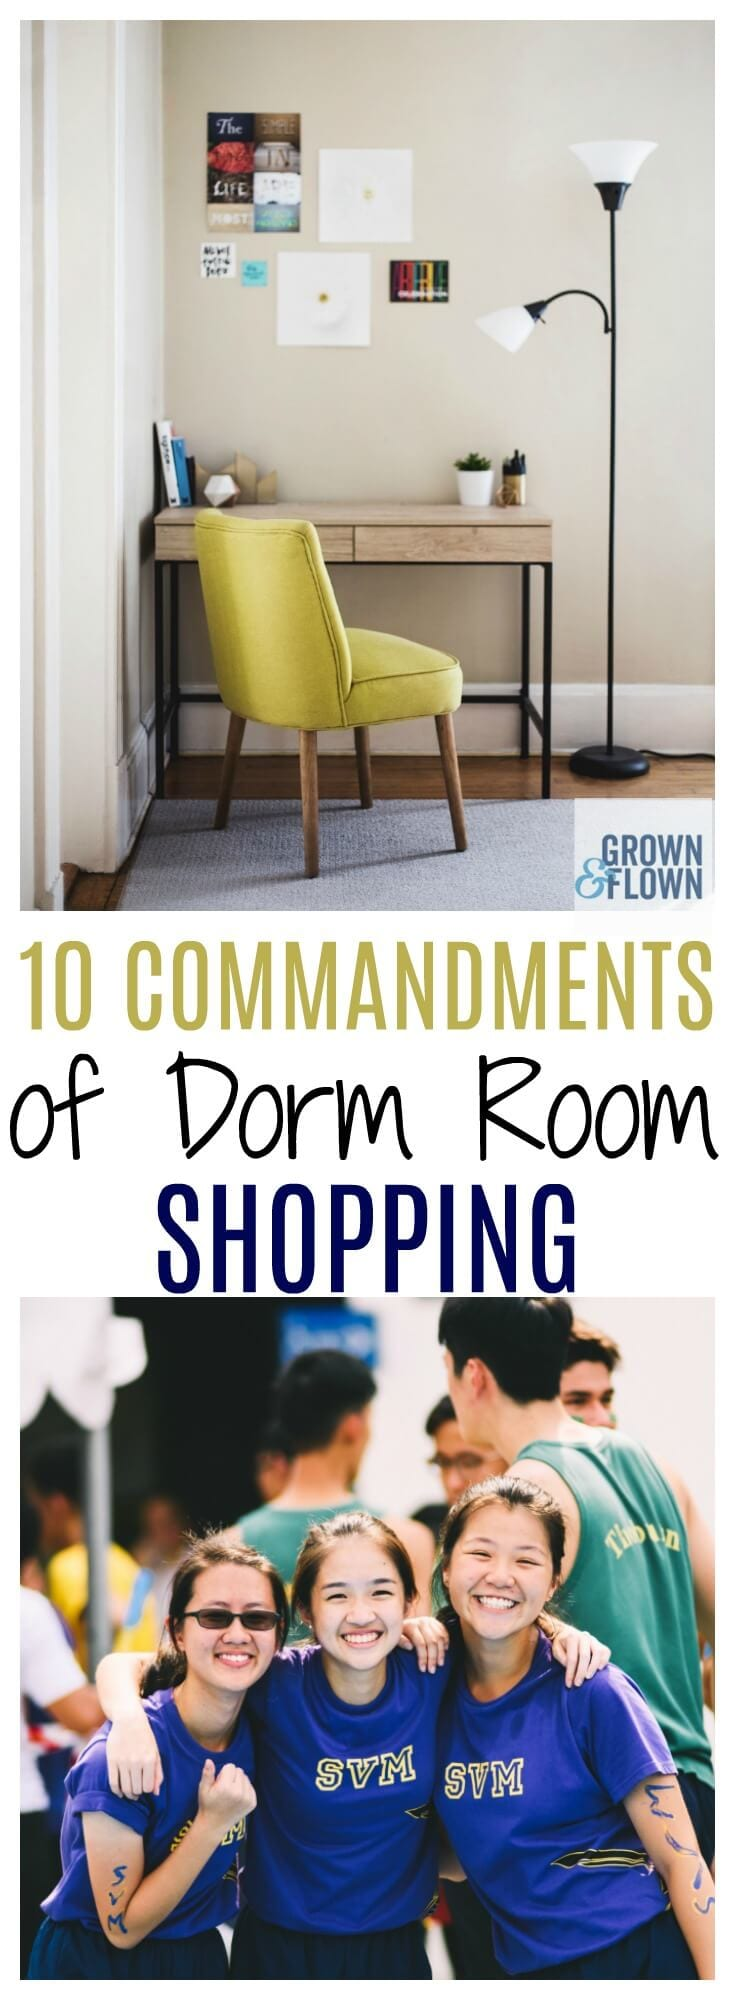 If you're going shopping for your teens new dorm room, there are some rules that you need to follow to save money! We've been there and done that and have all the tips and tricks to help you make your dorm room shopping trip a success. Just follow these dorm shopping ideas, and you'll be set for success. #dormroom #shopping #teens #collegelife #diydorm #dormroomorganization #organization #collegetips #dormtricks #dormdecor